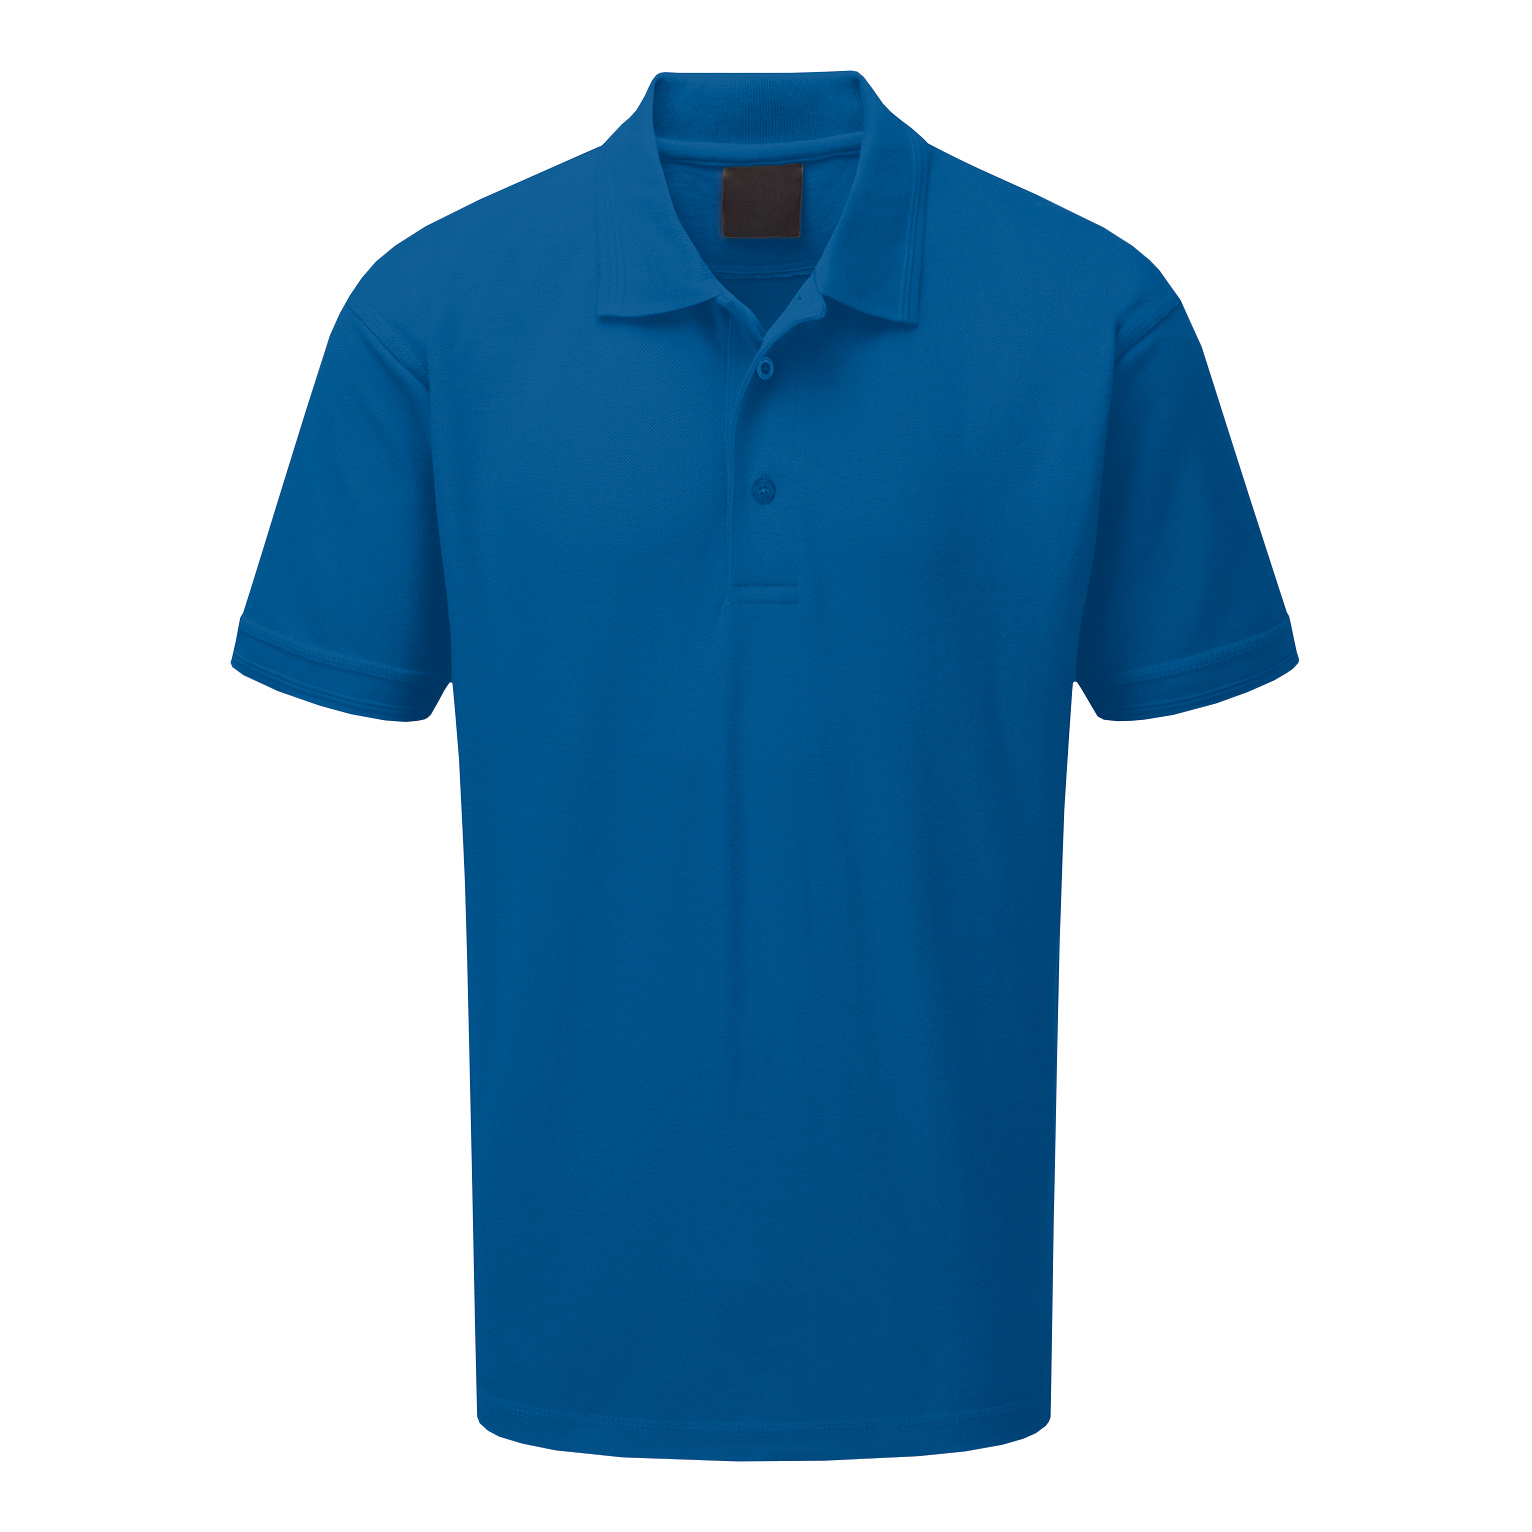 Premium Polo Triple Stitched Size XS Royal Blue *Approx 3 Day Leadtime*